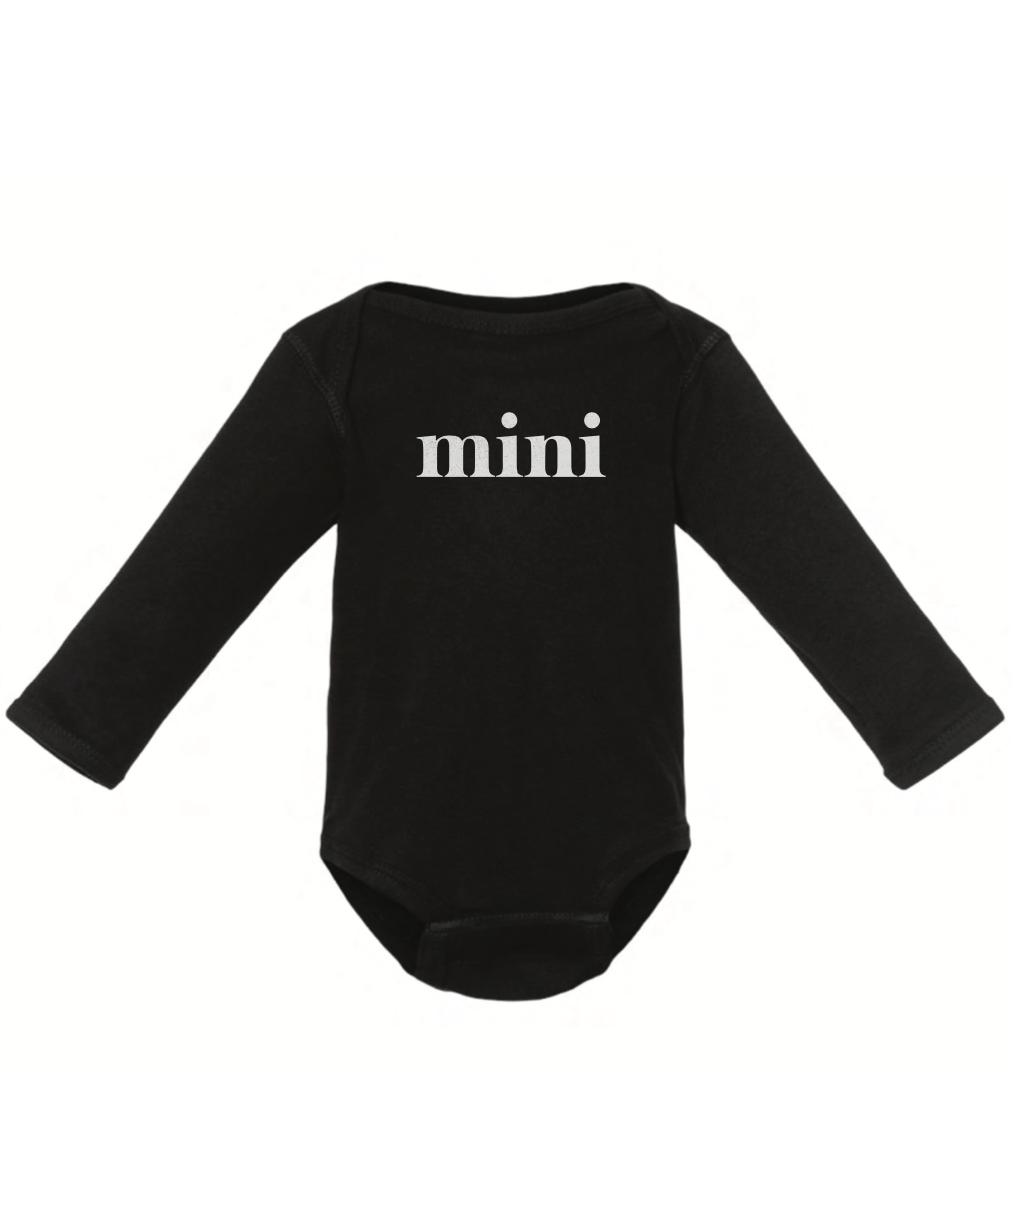 Mini - Infant Long Sleeve Onesie - Black